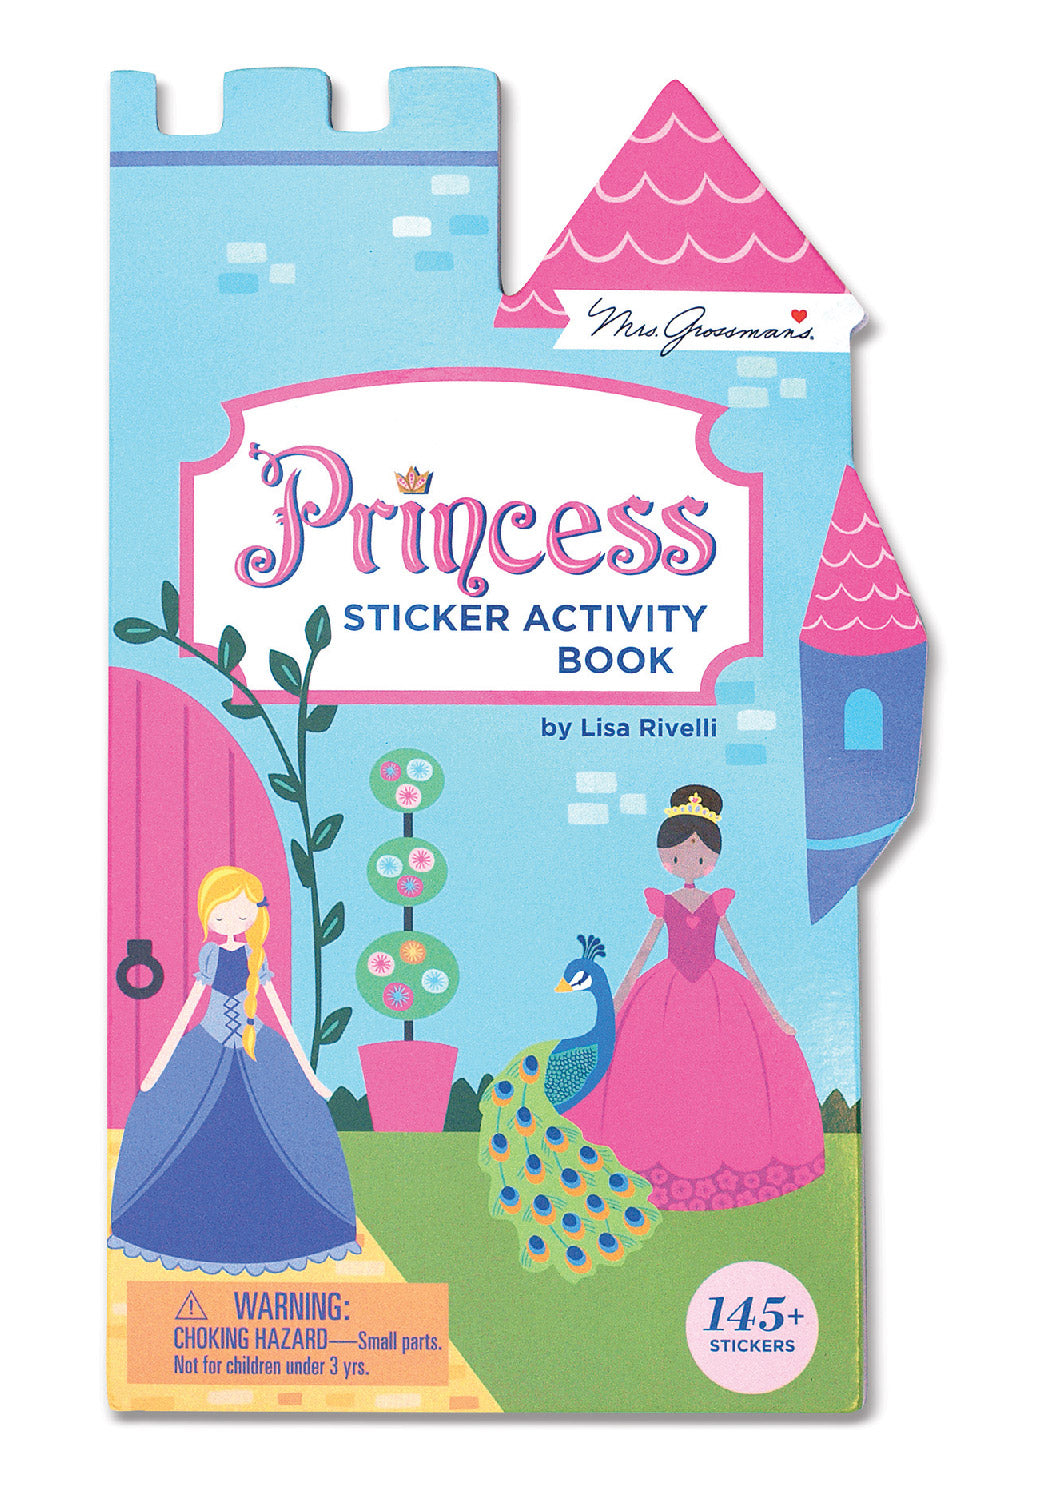 Princess Sticker Activity Book - Mrs. Grossman's